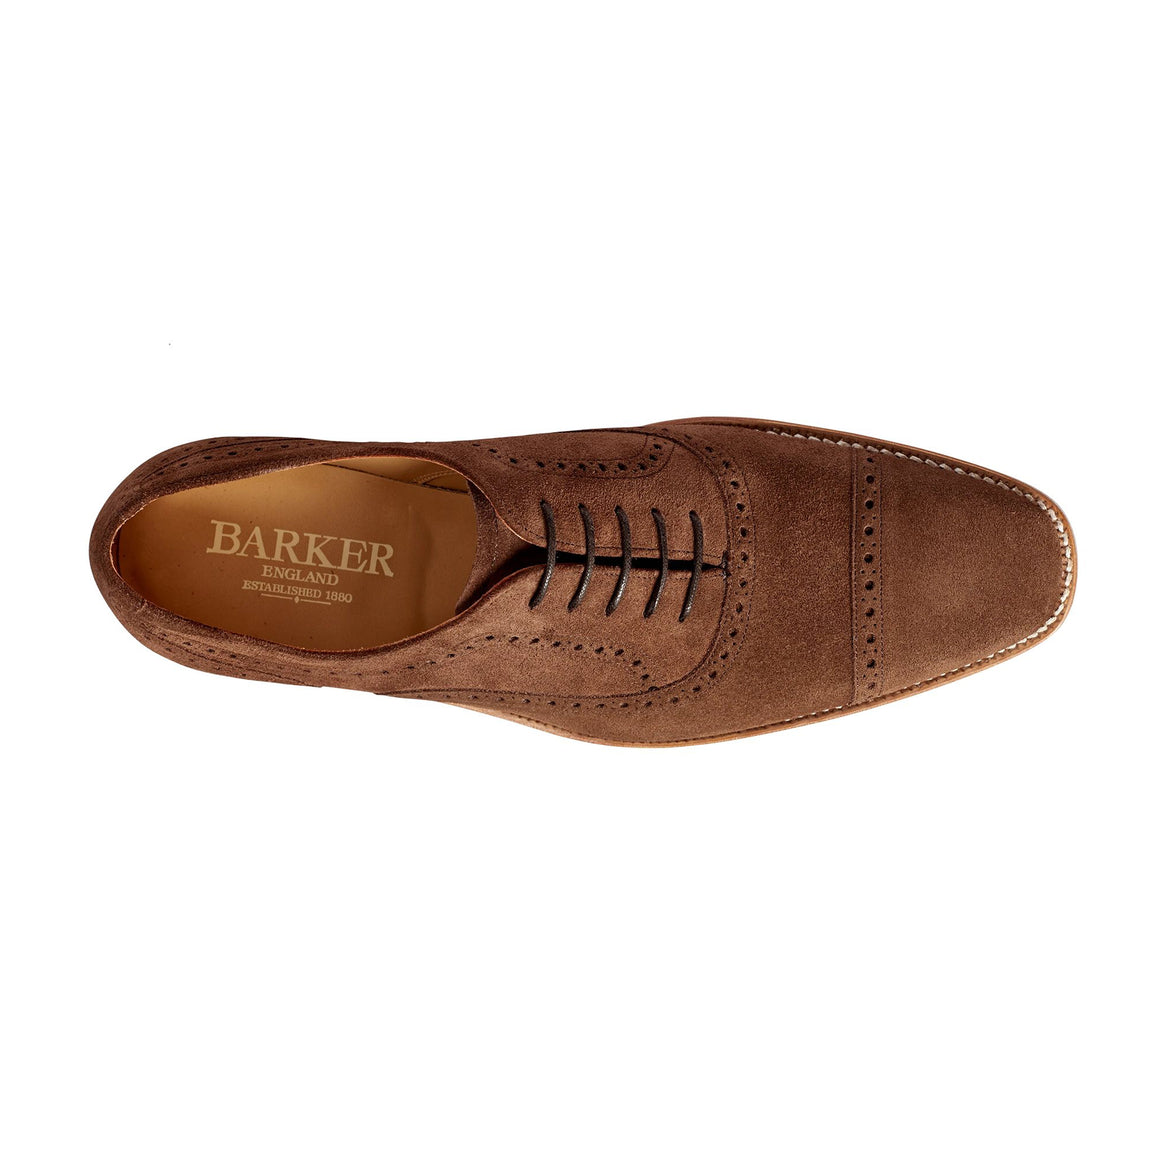 Luke Oxford Brogue Shoes for Men in Brown Suede